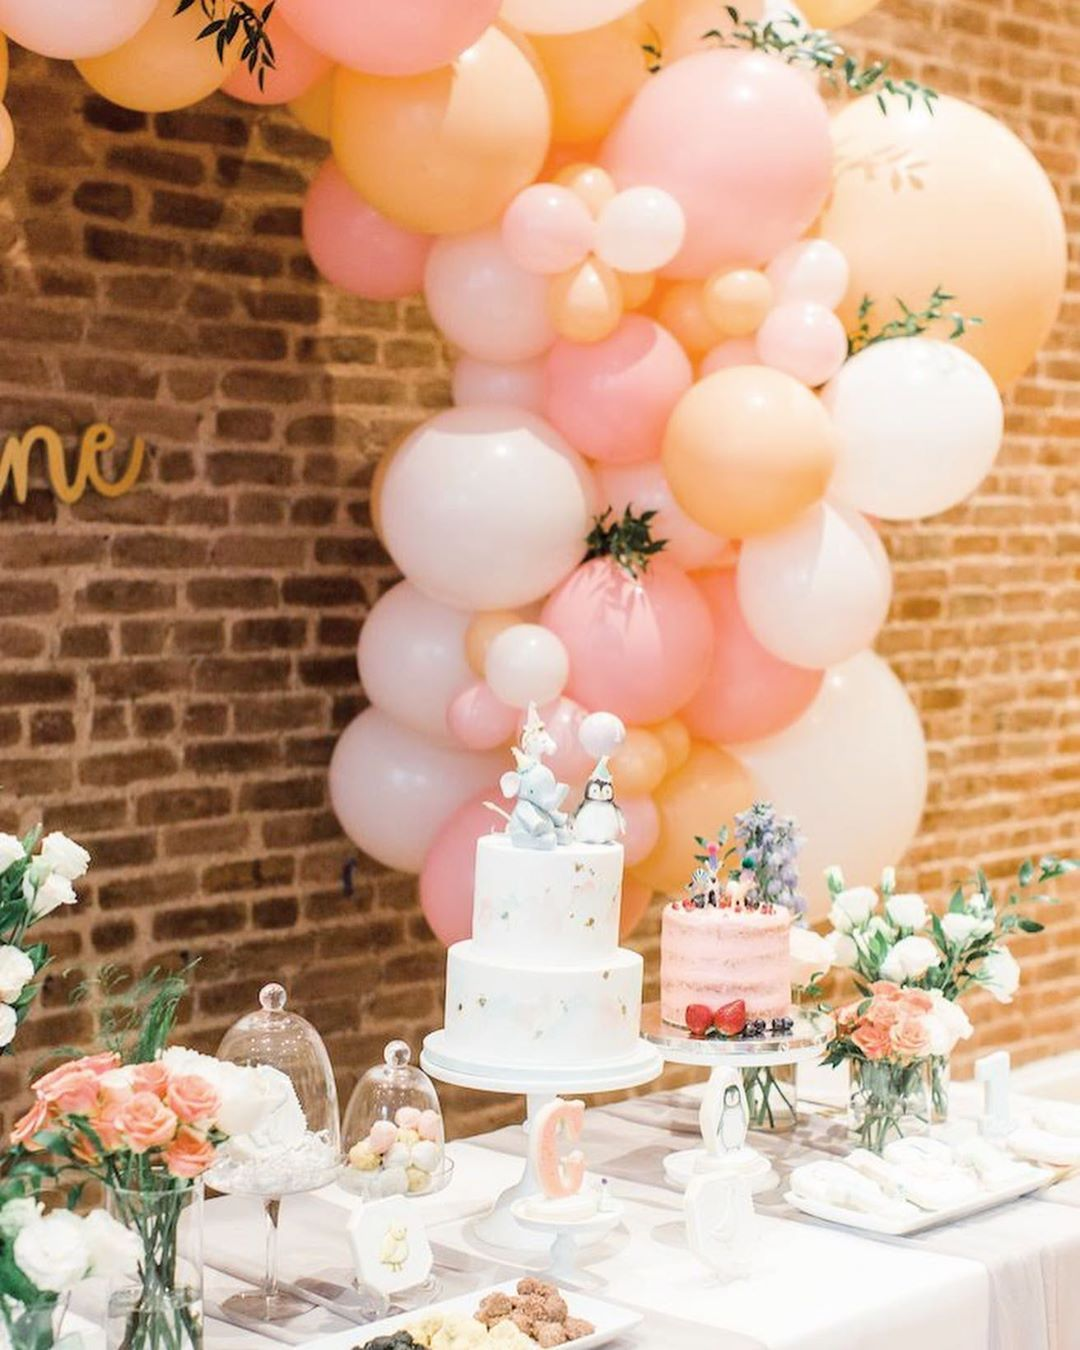 Best Balloon Party Styling Amazing Birthday Party Decoration Balloon Garland Event Ideas Balloons In 2020 Animal Birthday Party Birthday Parties Karas Party Ideas